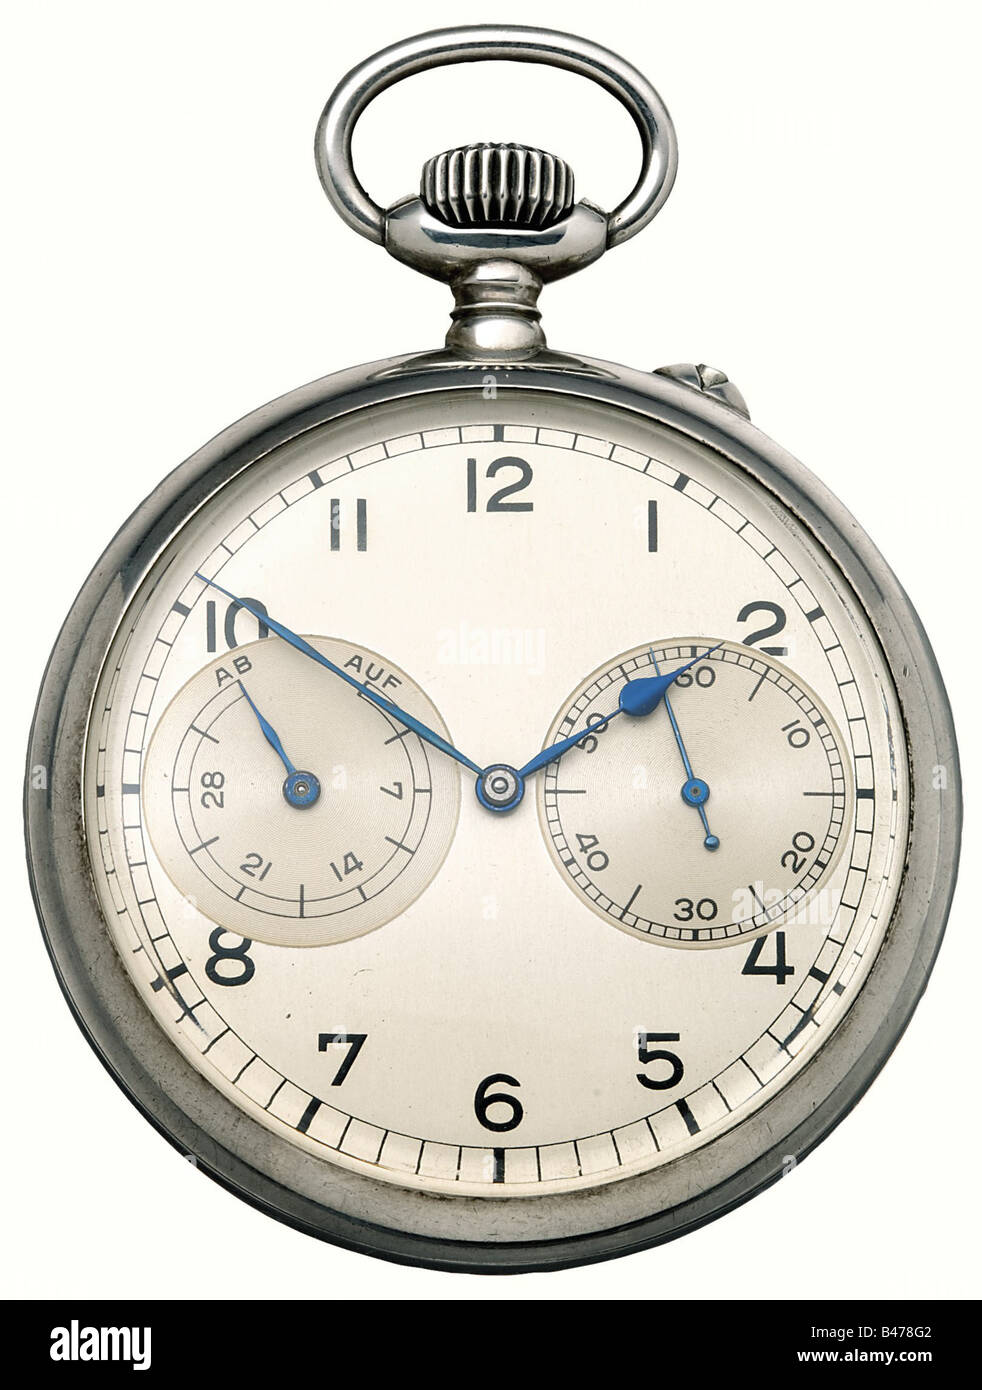 A chronometer, silver case, 48 mm diameter. Silver-plated dial. Blued hands, power reserve indicator, and second - Stock Image